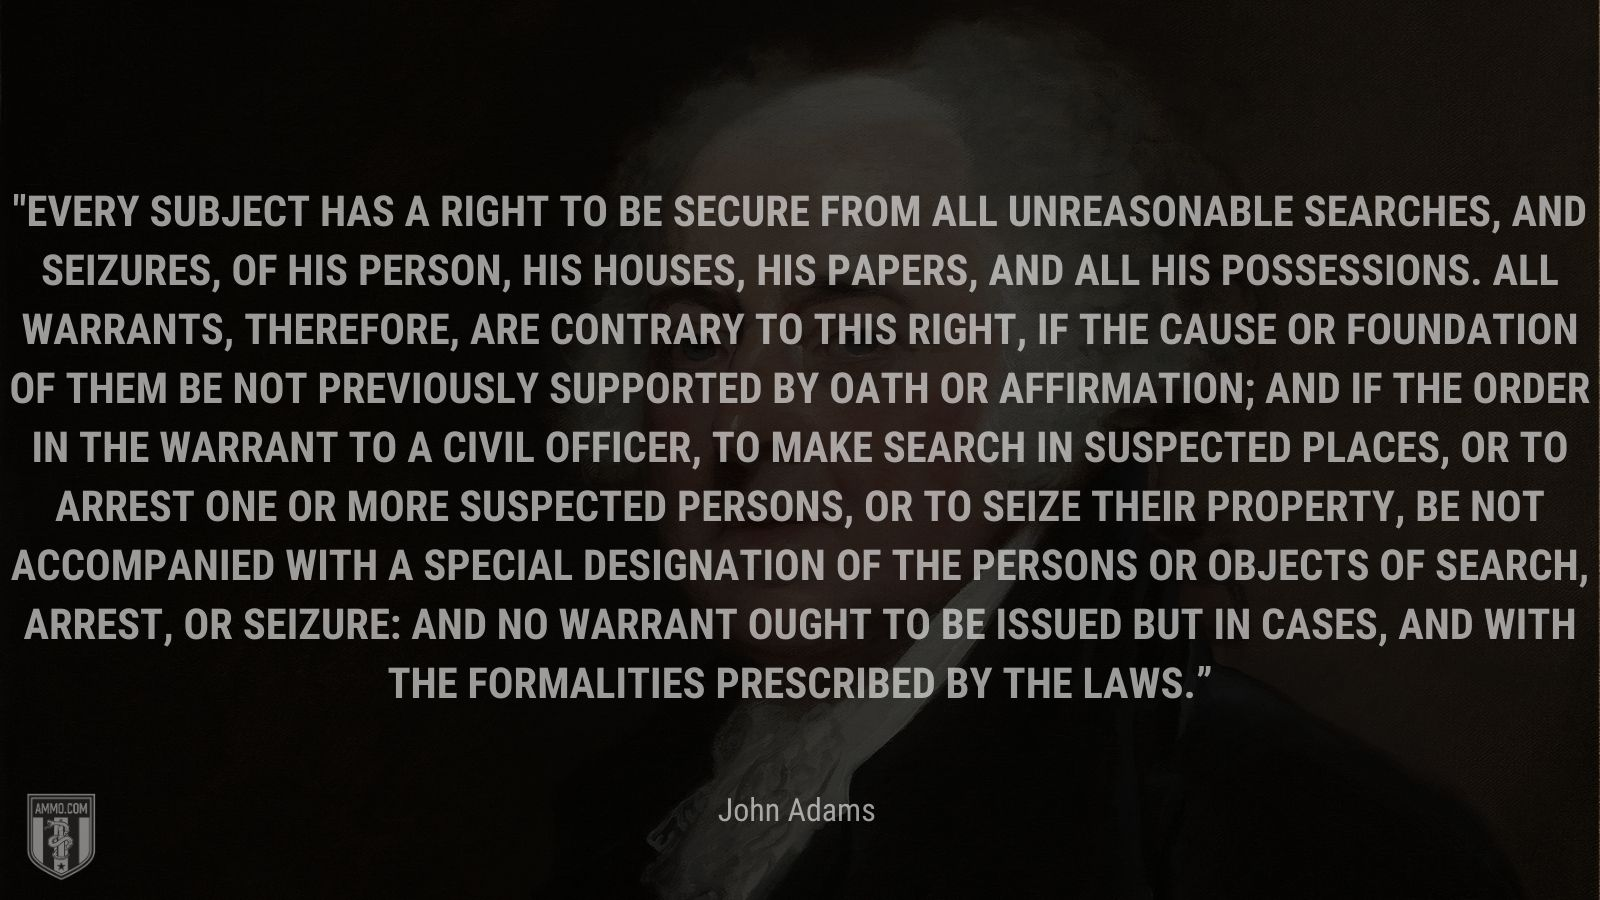 """""""Every subject has a right to be secure from all unreasonable searches, and seizures, of his person, his houses, his papers, and all his possessions. All warrants, therefore, are contrary to this right, if the cause or foundation of them be not previously supported by oath or affirmation; and if the order in the warrant to a civil officer, to make search in suspected places, or to arrest one or more suspected persons, or to seize their property, be not accompanied with a special designation of the persons or objects of search, arrest, or seizure: and no warrant ought to be issued but in cases, and with the formalities prescribed by the laws."""" - John Adams"""